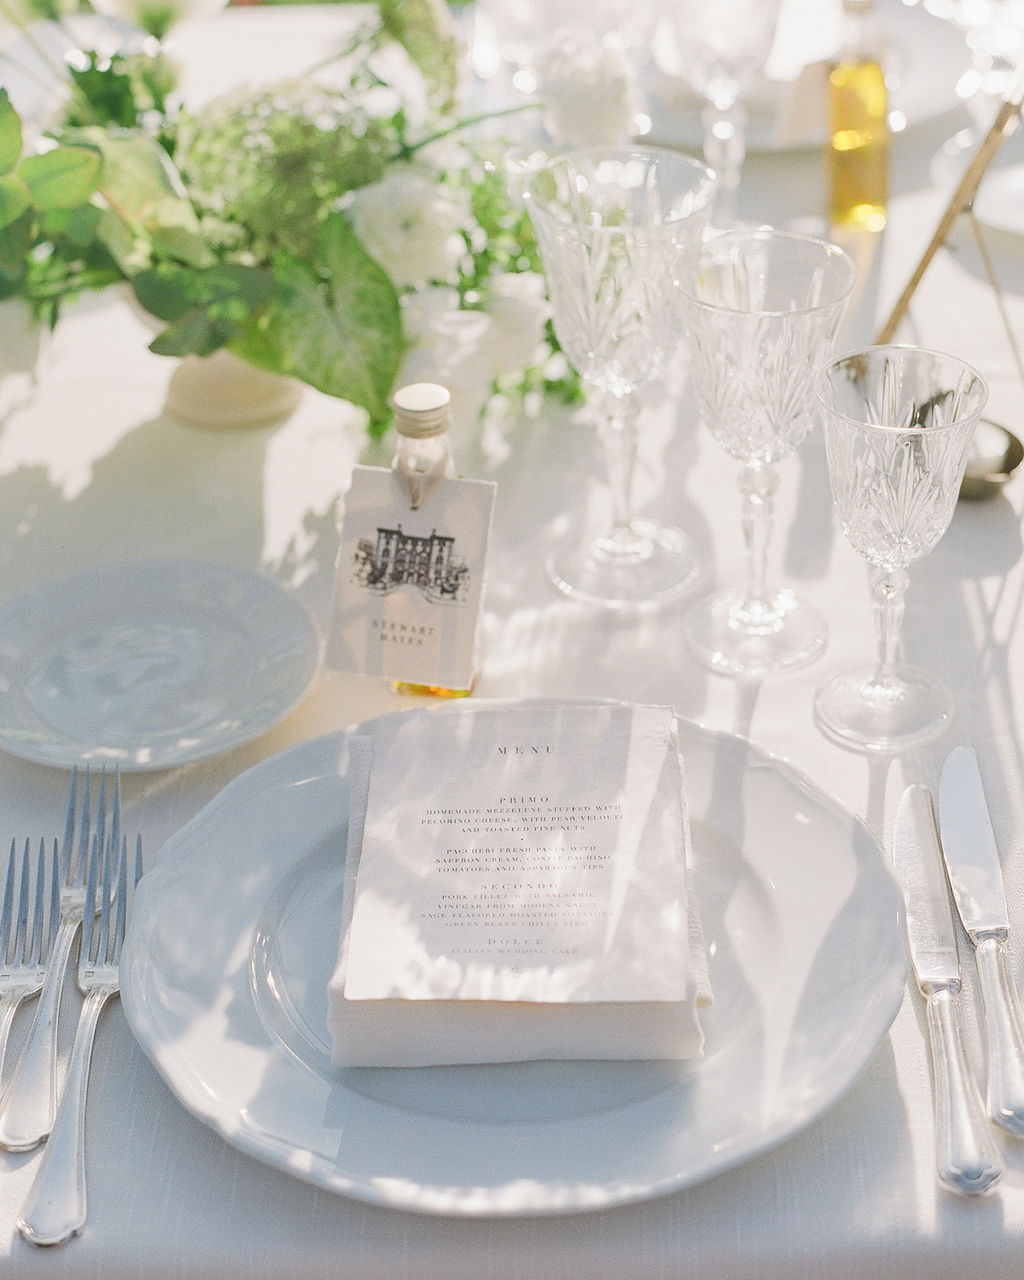 monochrome place settings with miniature bottles of olive oil as place cards